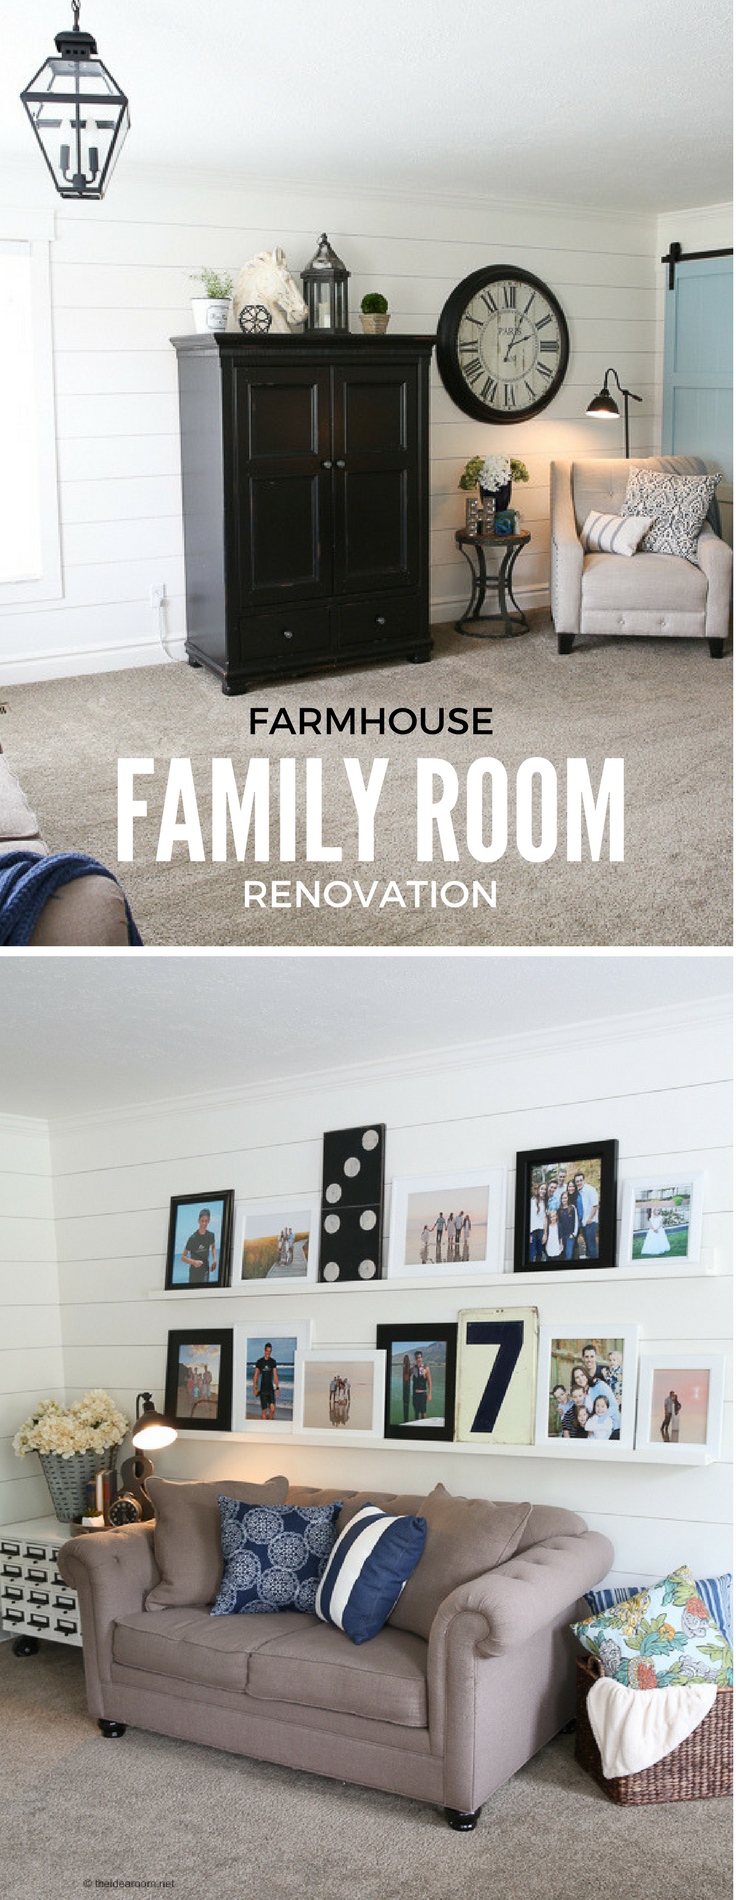 dc5dfd0d454983875a535b5a63680a58 - Family Sharing Accommodation In Discovery Gardens